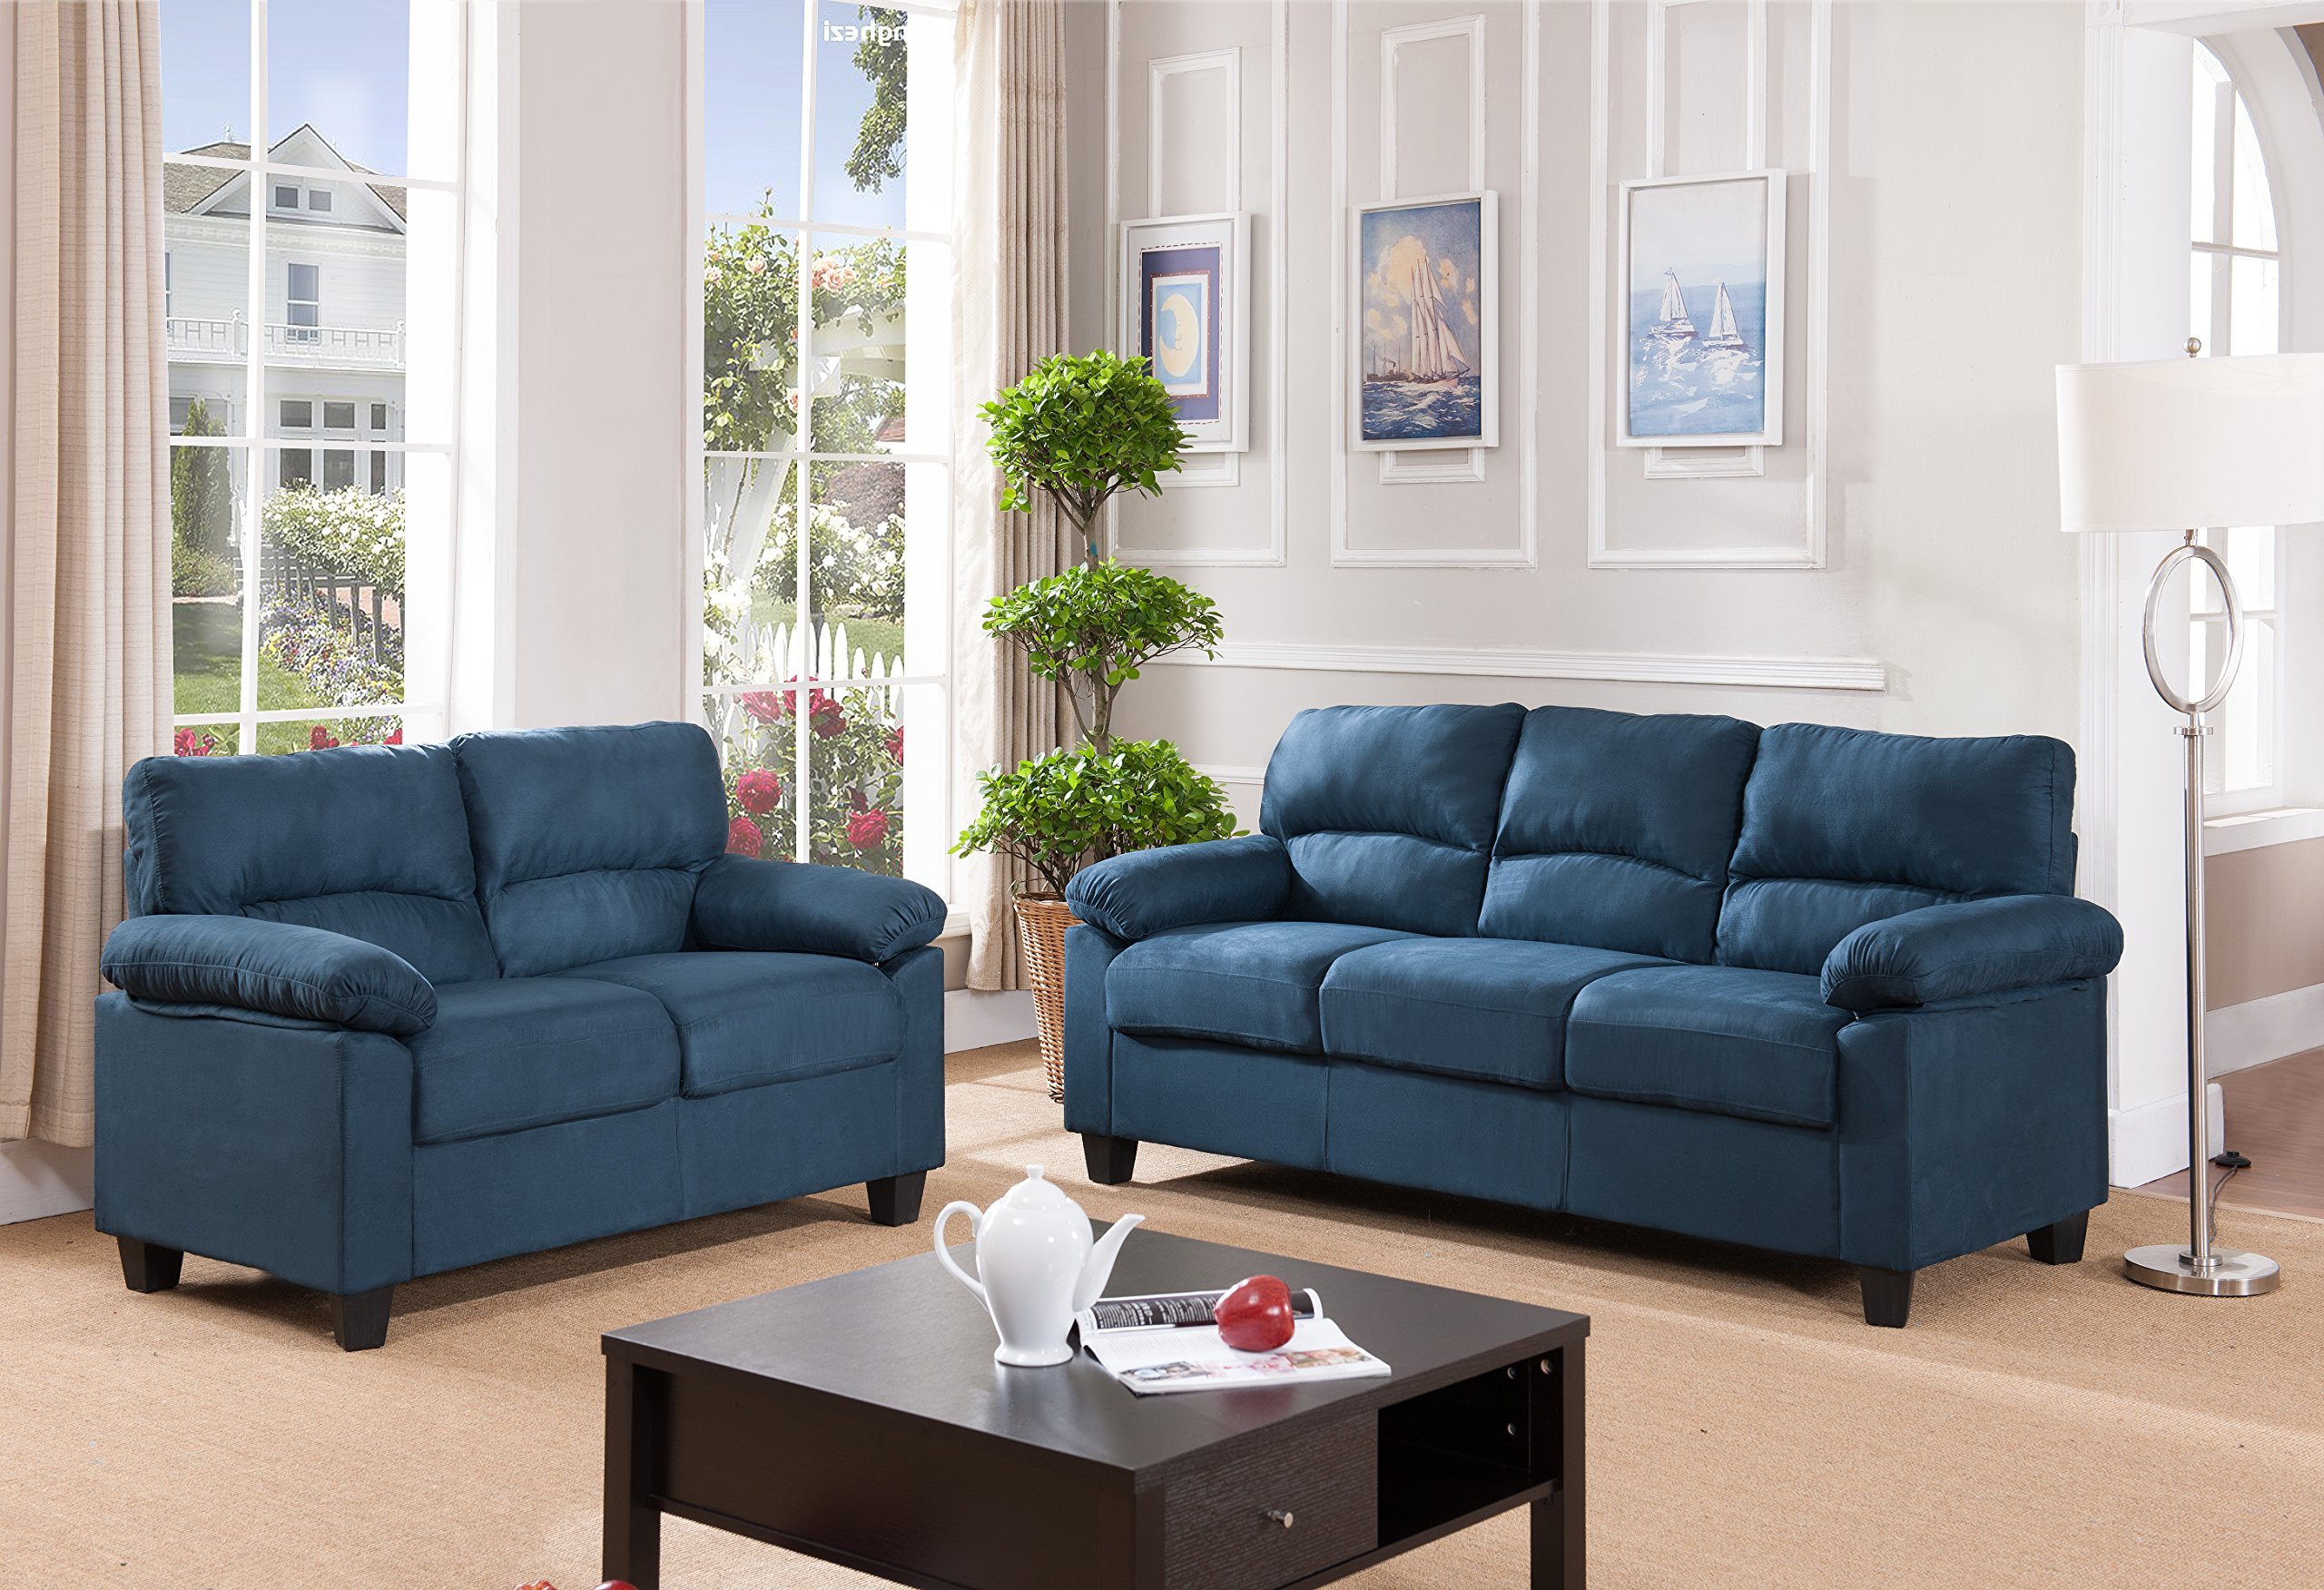 Pilaster Designs Blue Upholstered Microfiber Stationary Living Room Set (Chair, Loveseat, Sofa) by Pilaster Designs (Image #1)